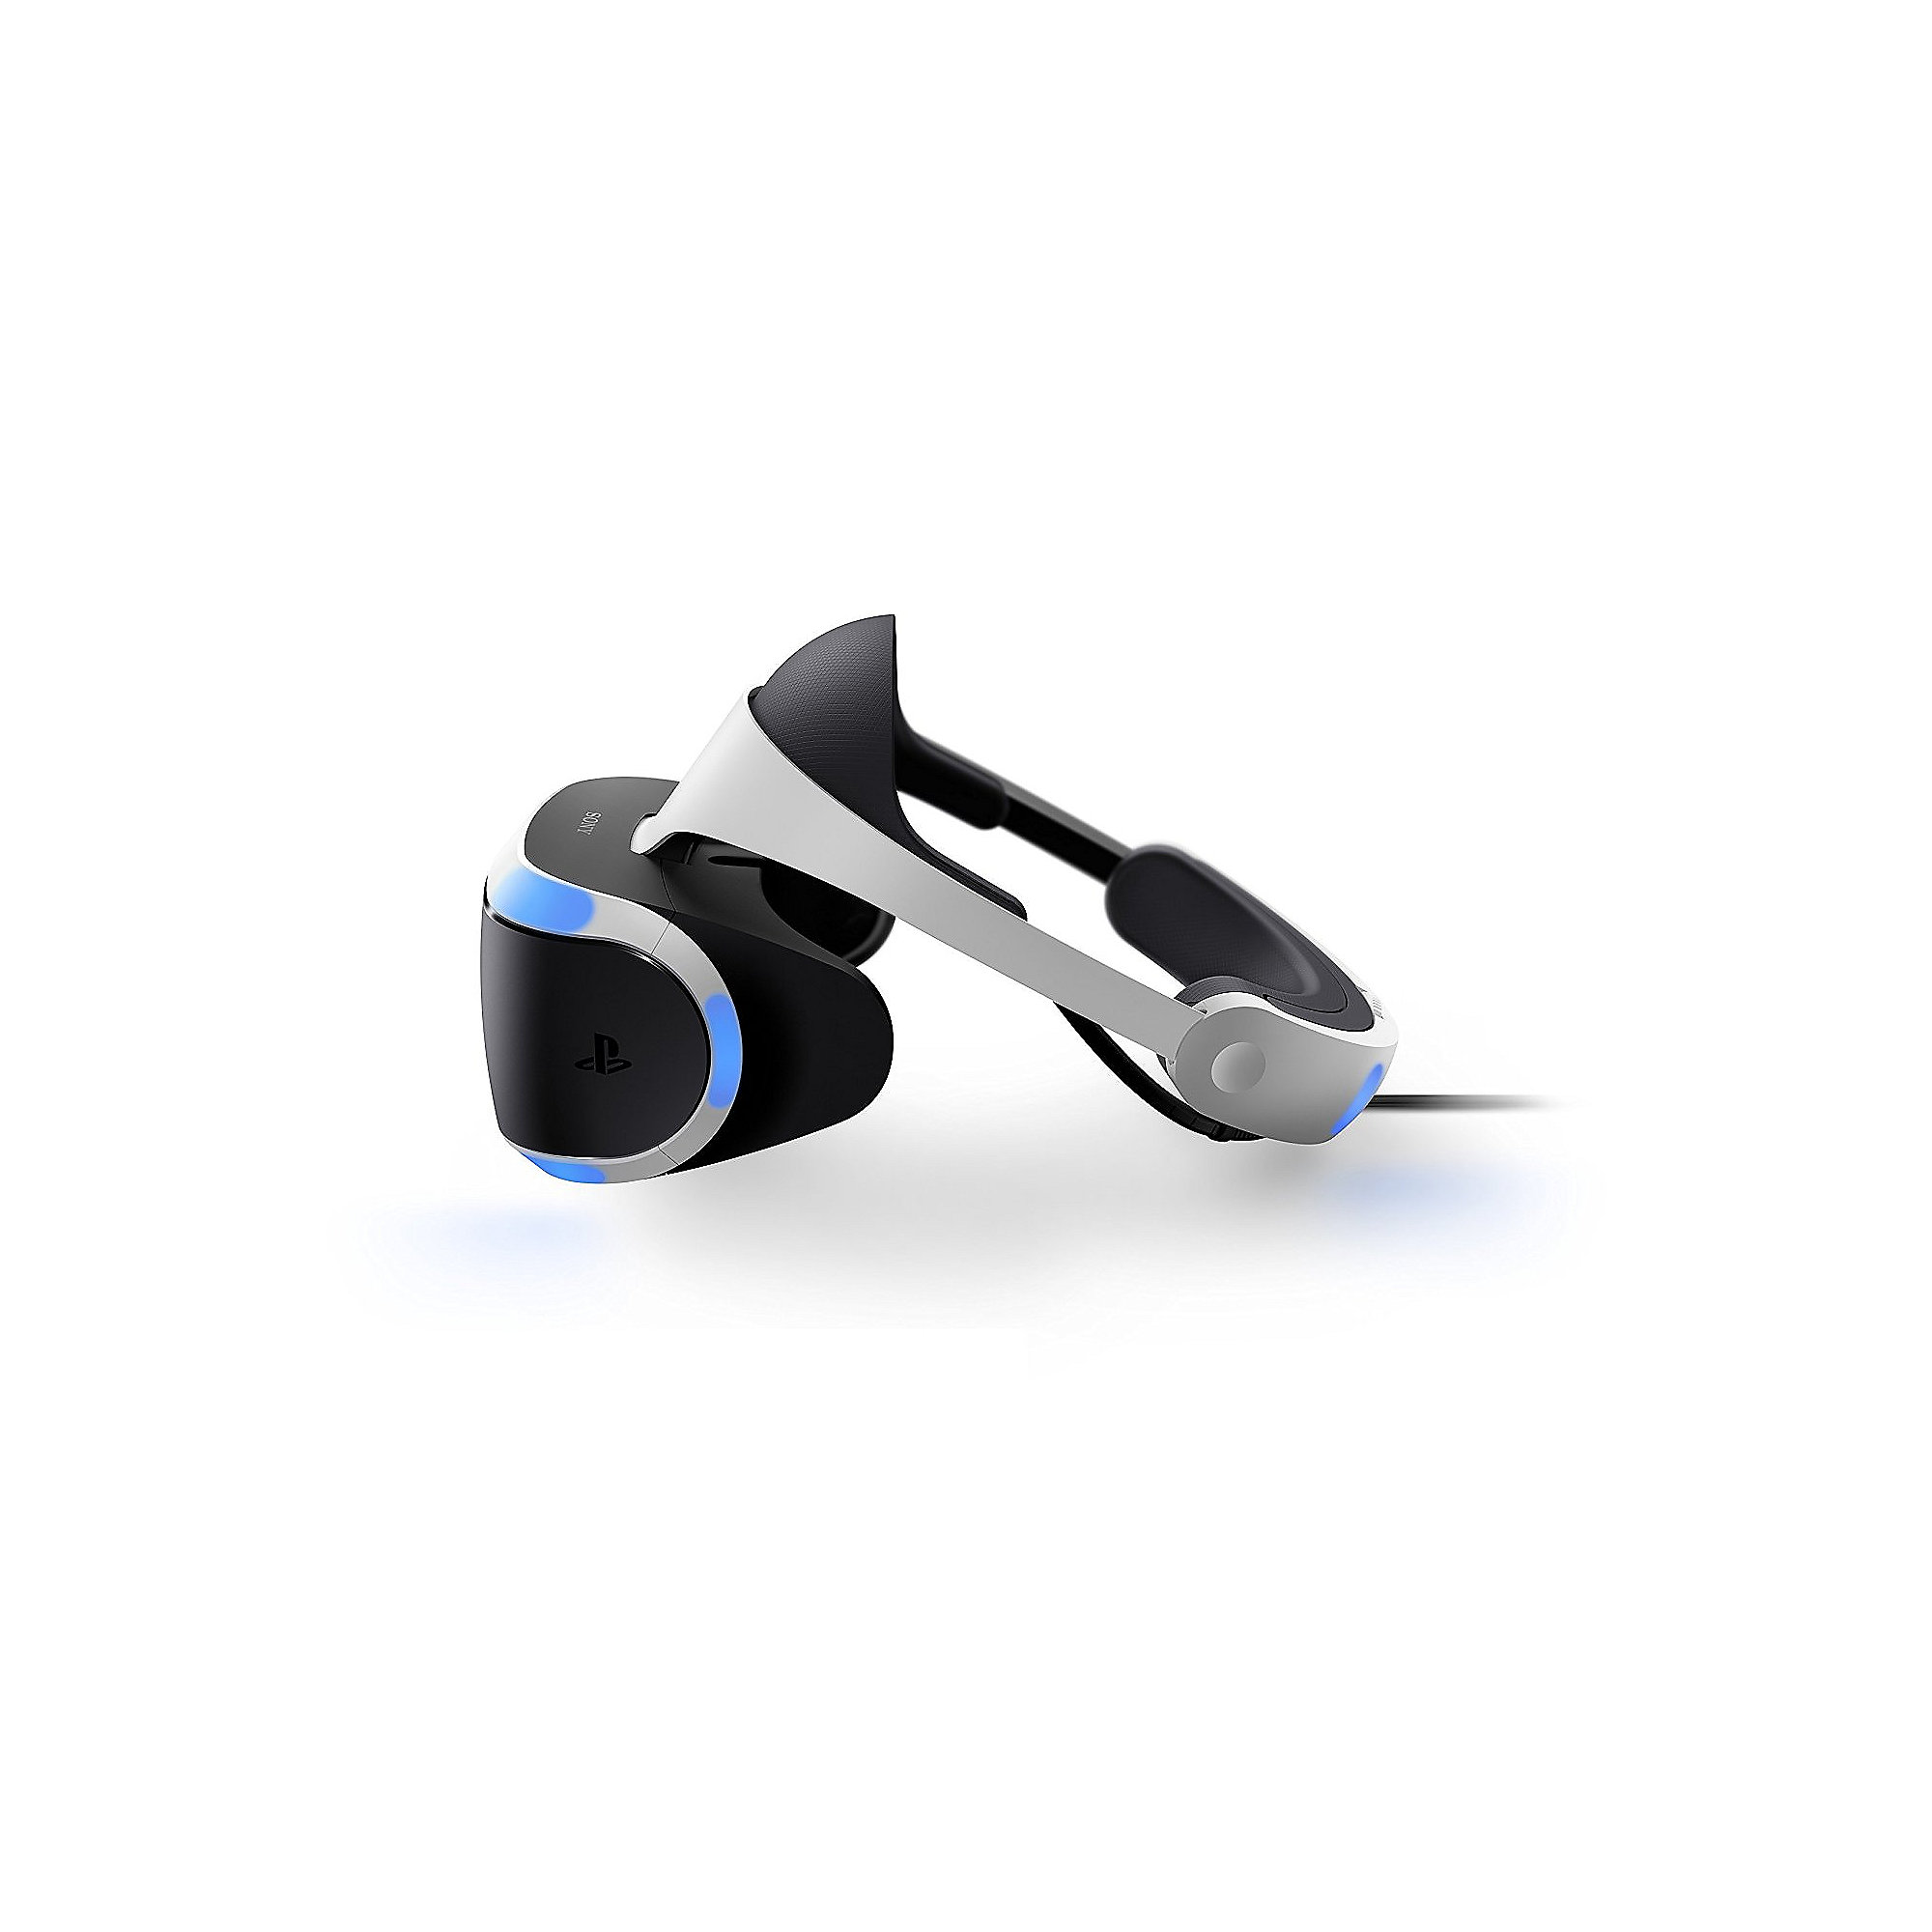 Sony Playstation VR Headset